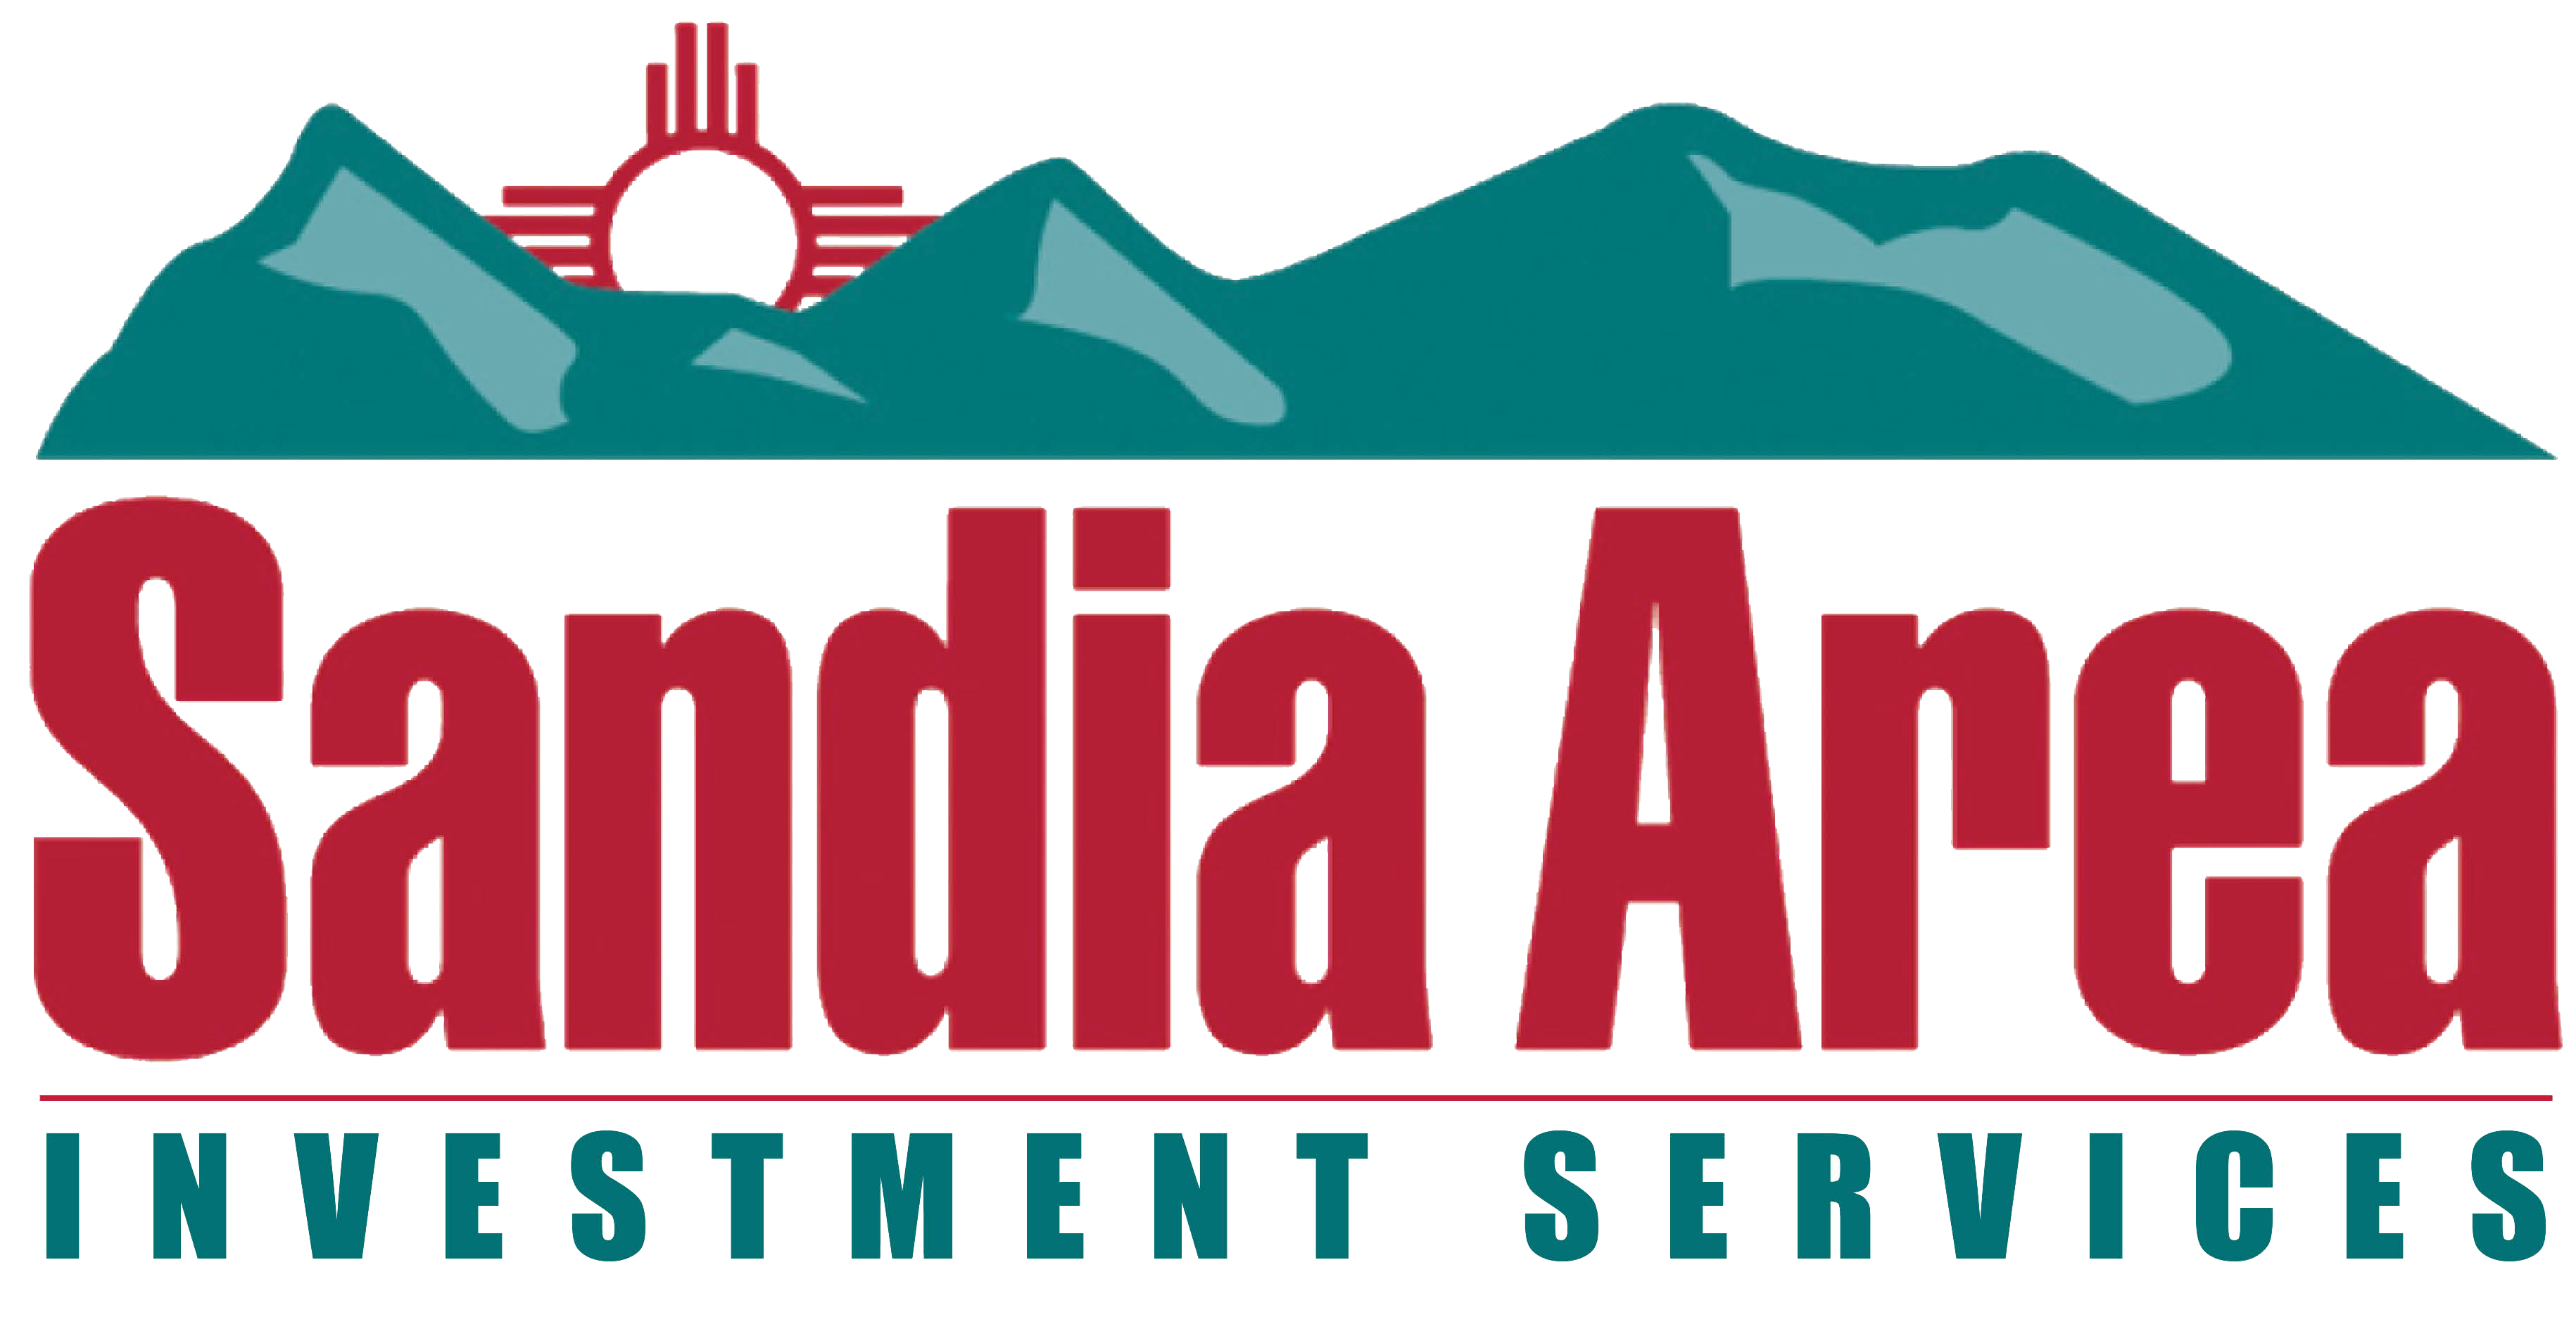 Sandia Area Investment Services logo